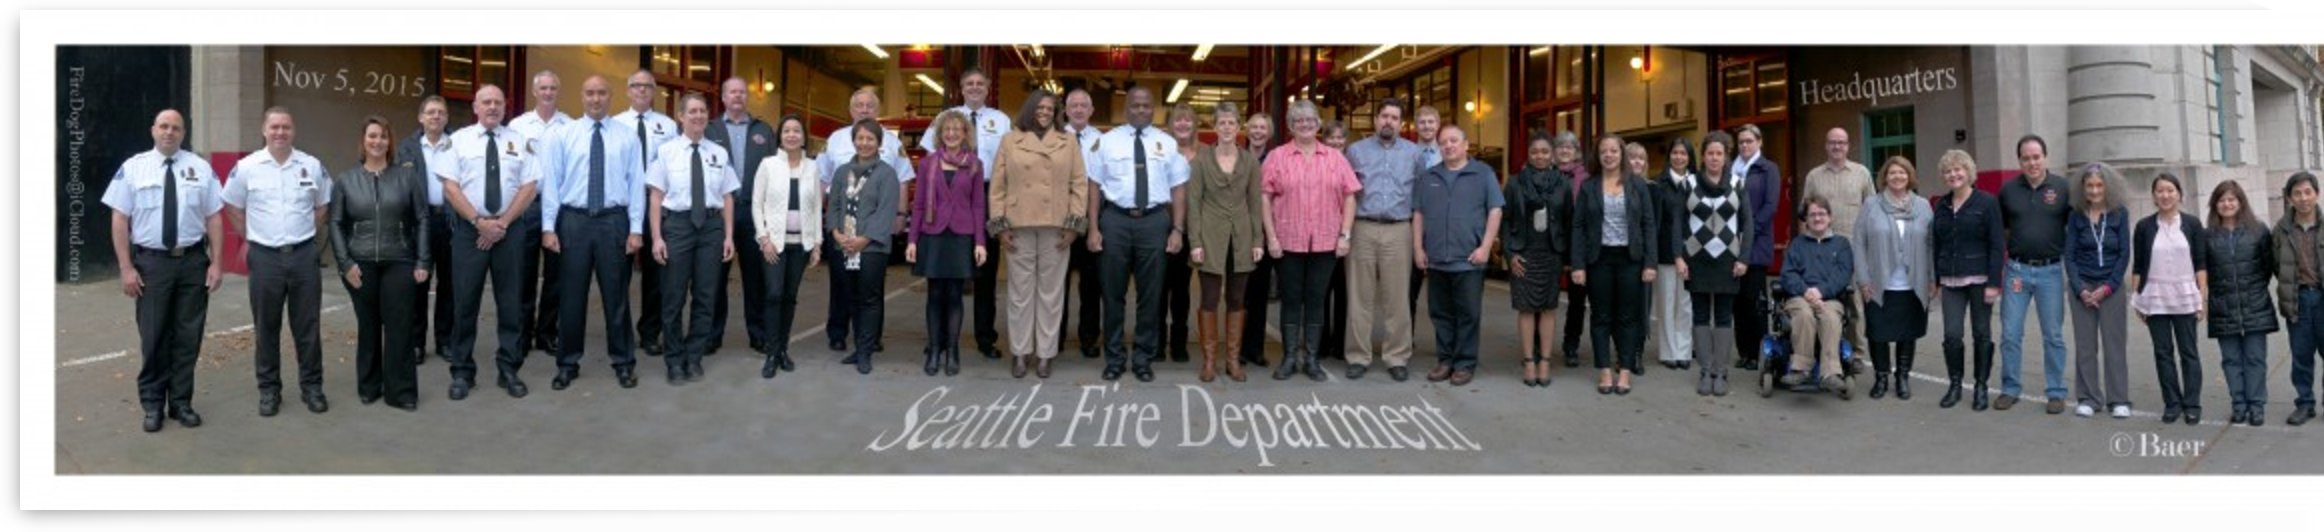 Seattle Fire Department Headquarters Photo 2015 by Steve